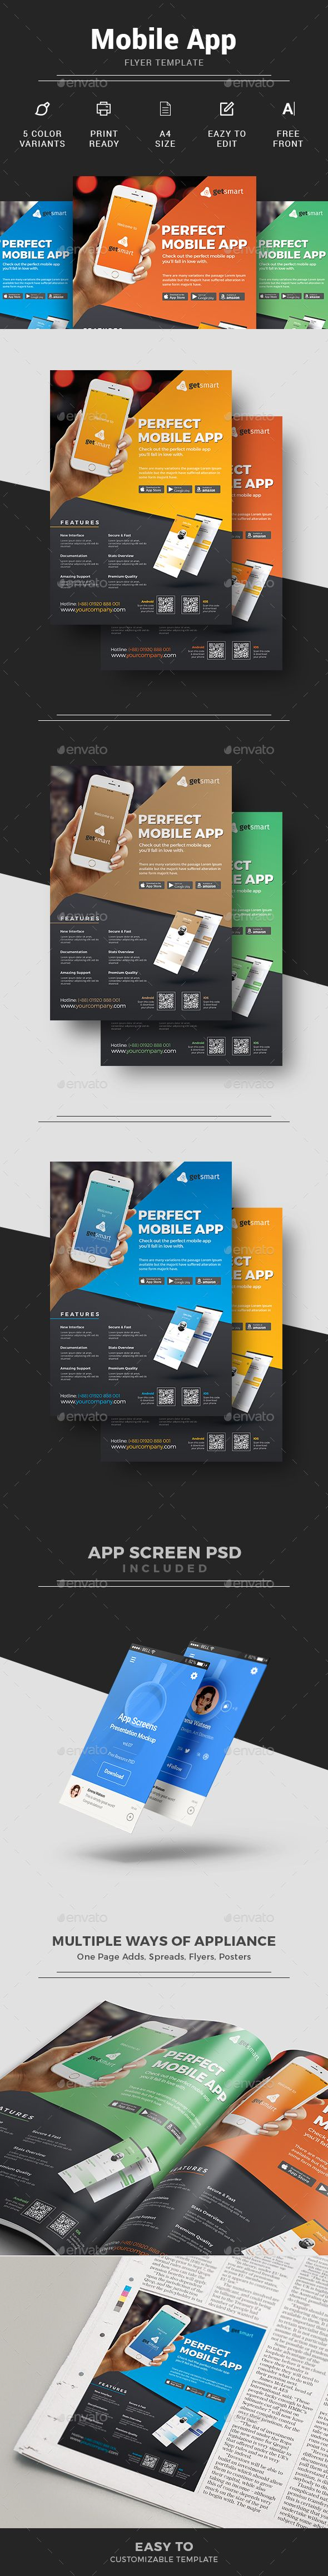 #Mobile #App Flyer - Commerce #Flyers Download here: https://graphicriver.net/item/mobile-app-flyer/16149992?ref=alena994